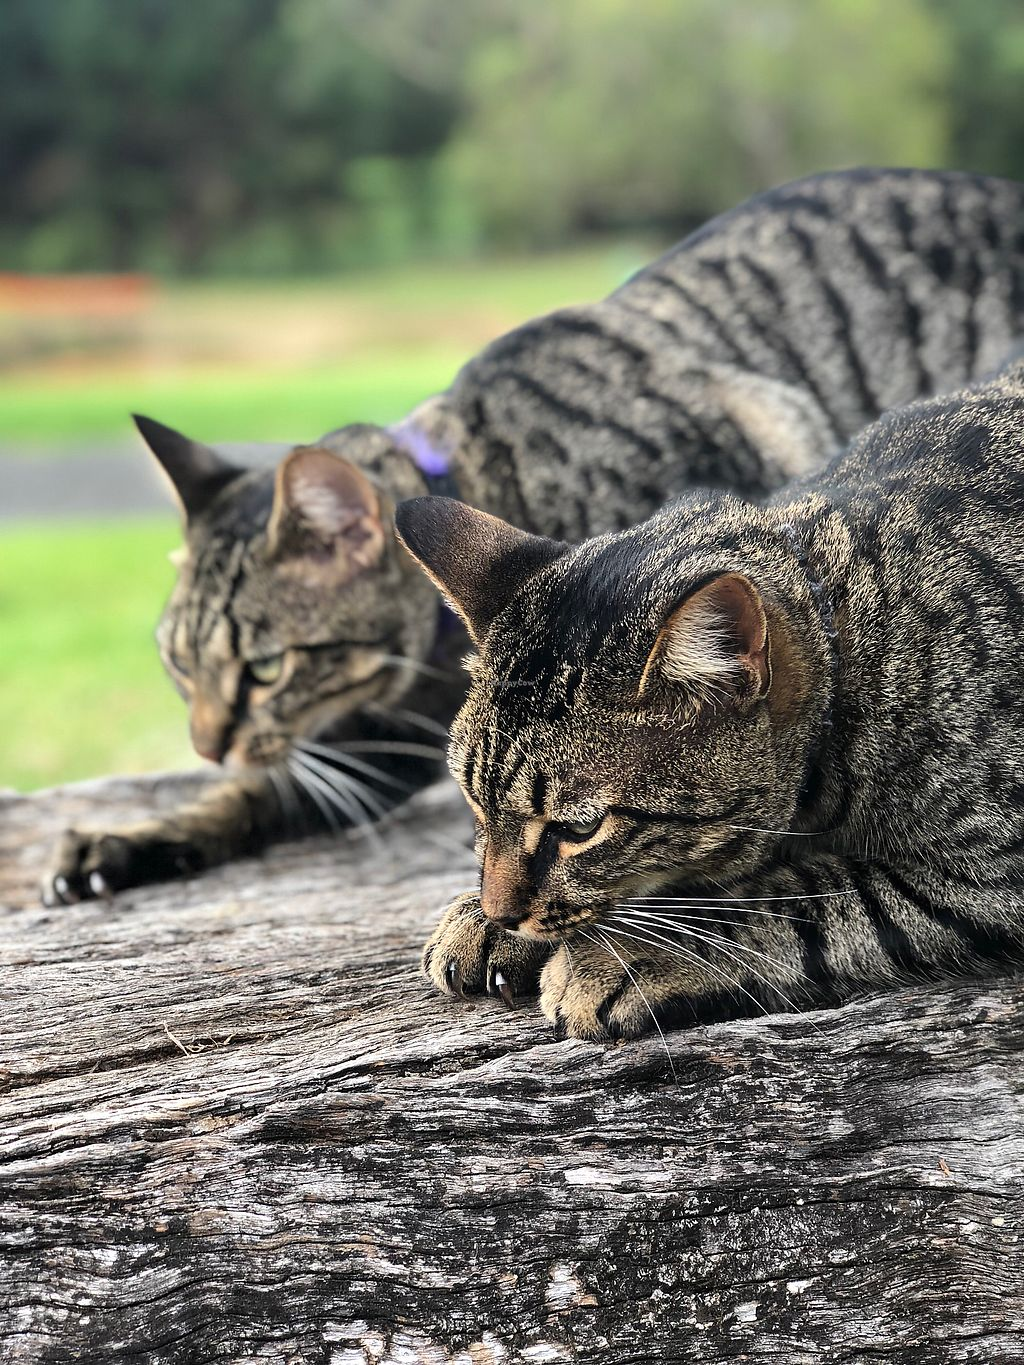 """Photo of Back 2 Earth B&B  by <a href=""""/members/profile/JennyHammond"""">JennyHammond</a> <br/>Simba and Mufasa - rescued brothers  <br/> March 4, 2018  - <a href='/contact/abuse/image/96289/366423'>Report</a>"""